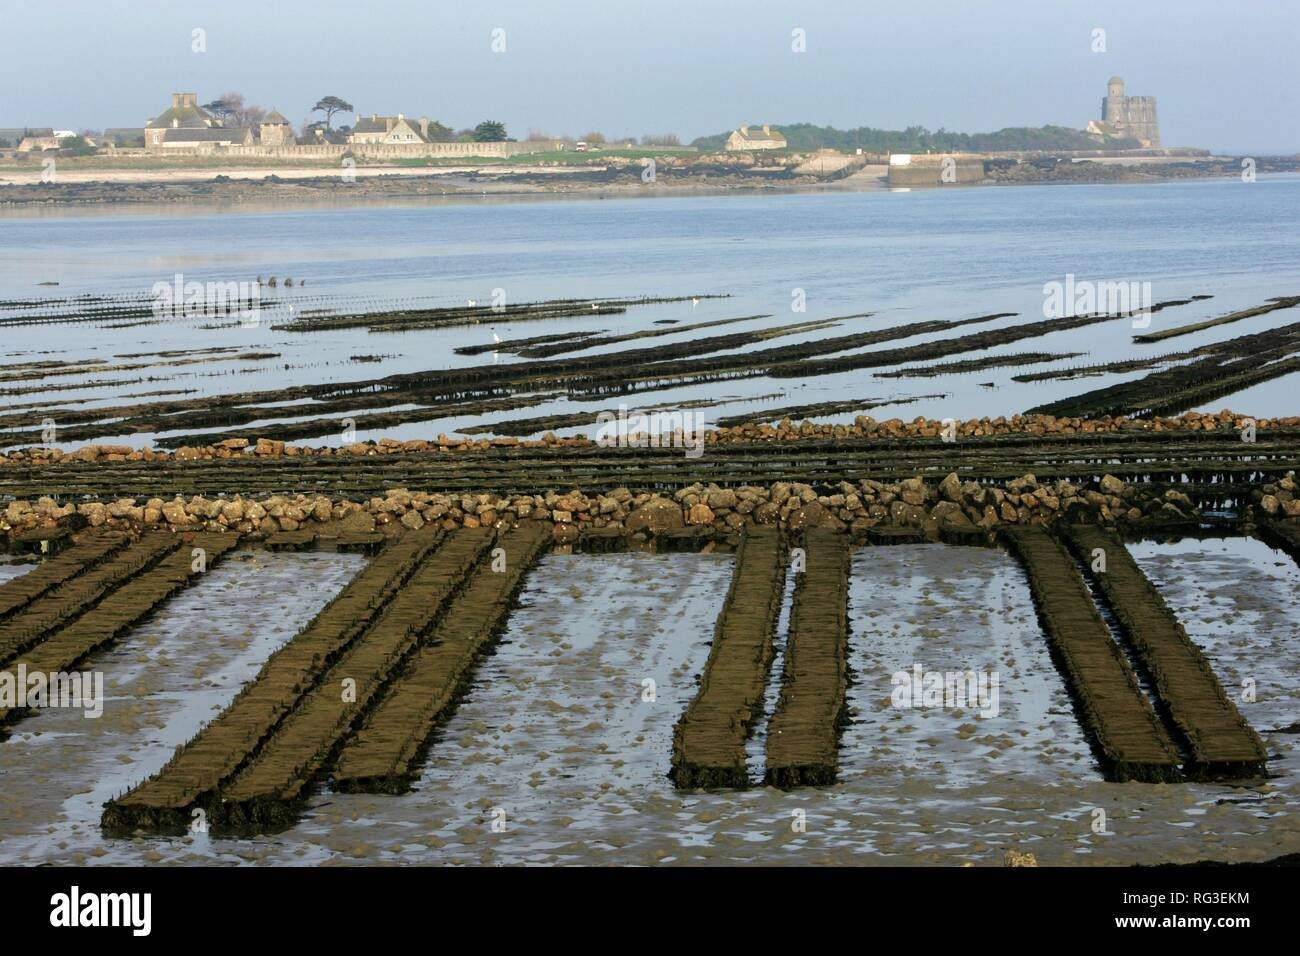 FRA, France, Normandy: Oyster farm of St. Vaast la Hougue. Behind, the island of Tatihou Stock Photo